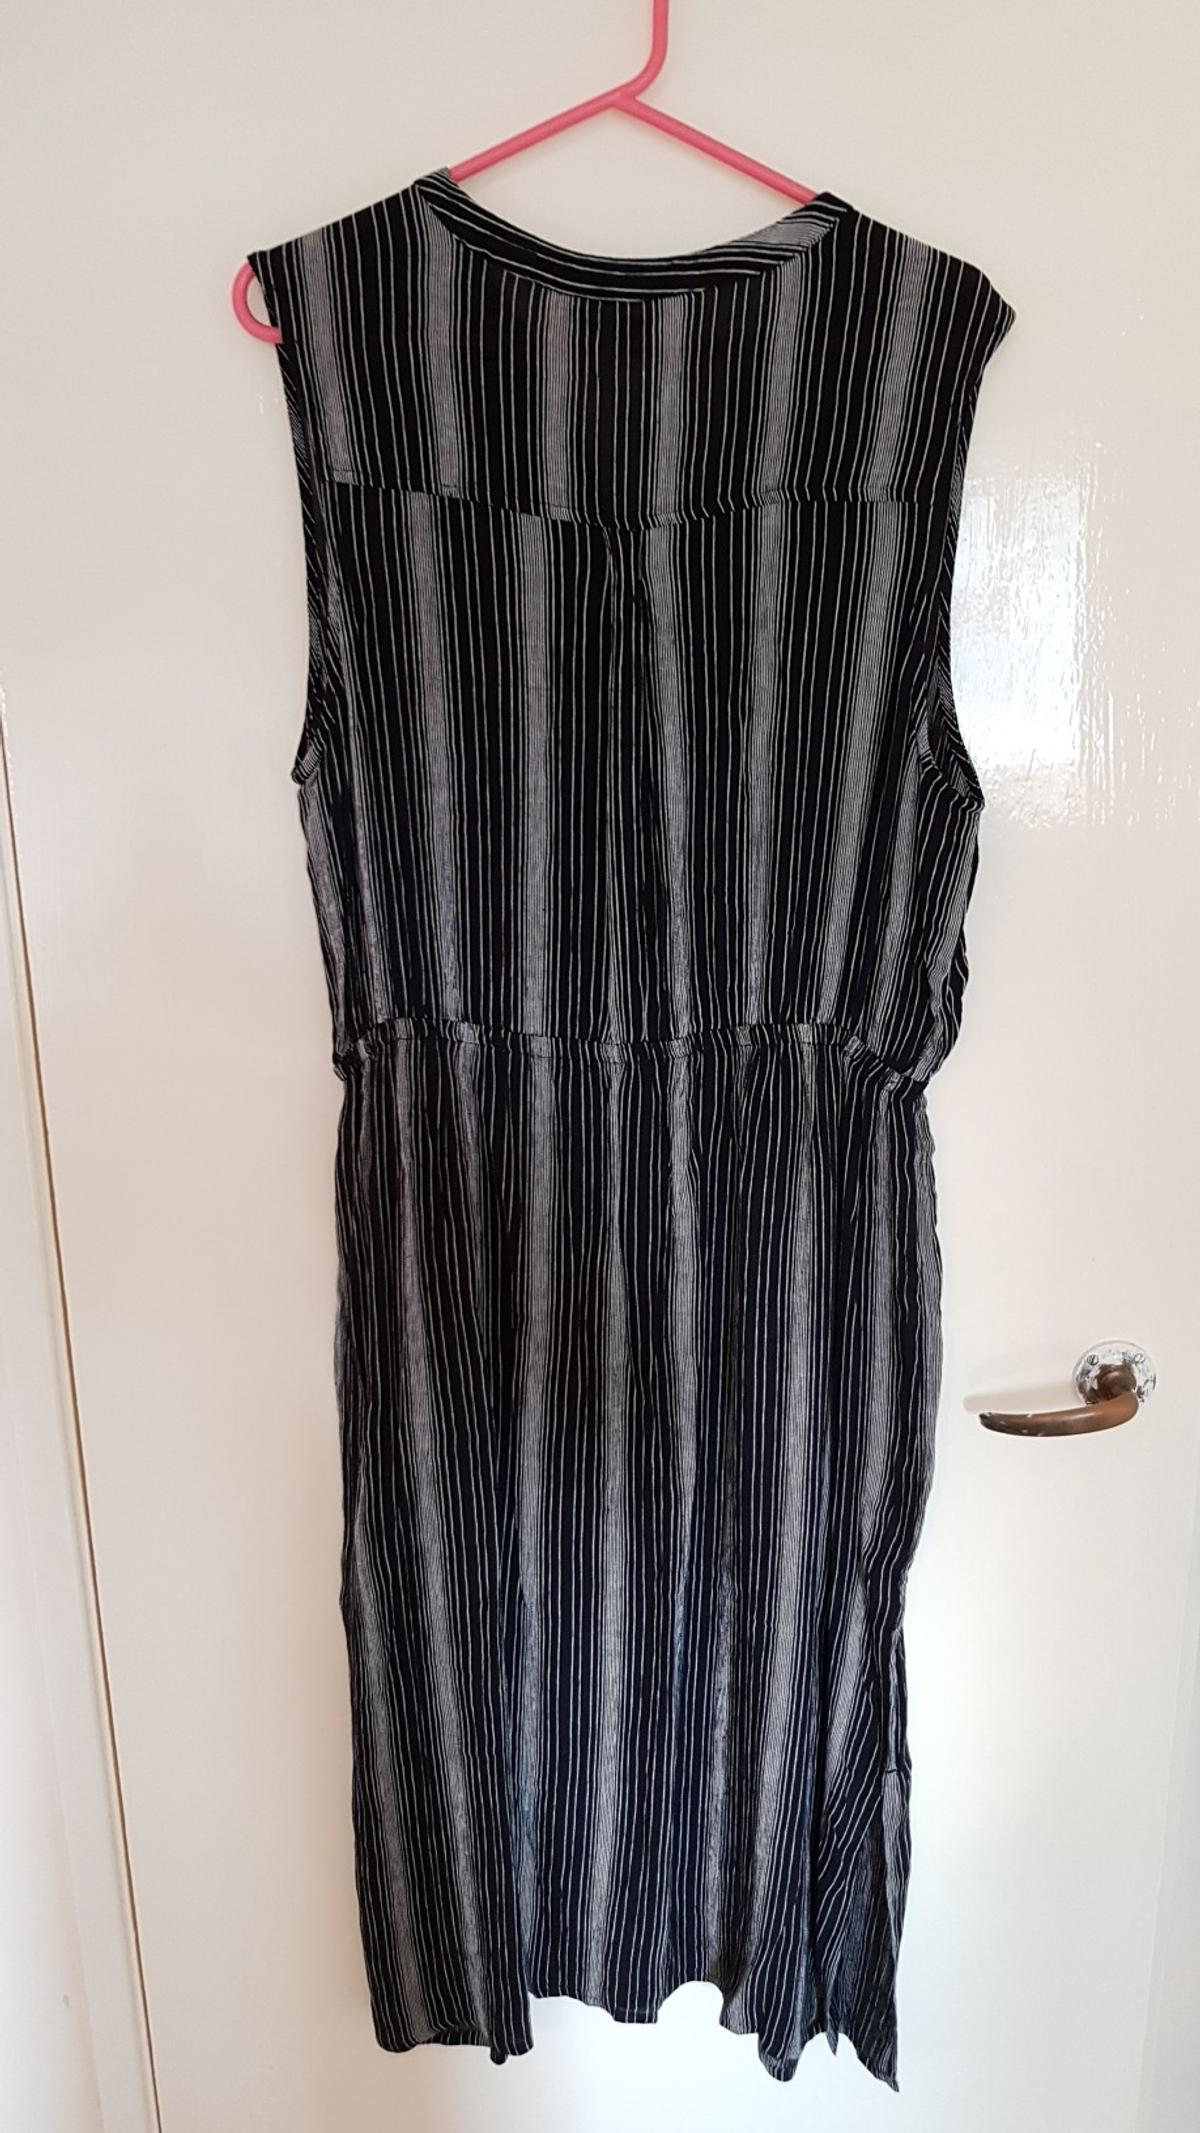 b8bc2346b7 Size 18 dress new ! in GU46 Crowthorne for £6.50 for sale - Shpock